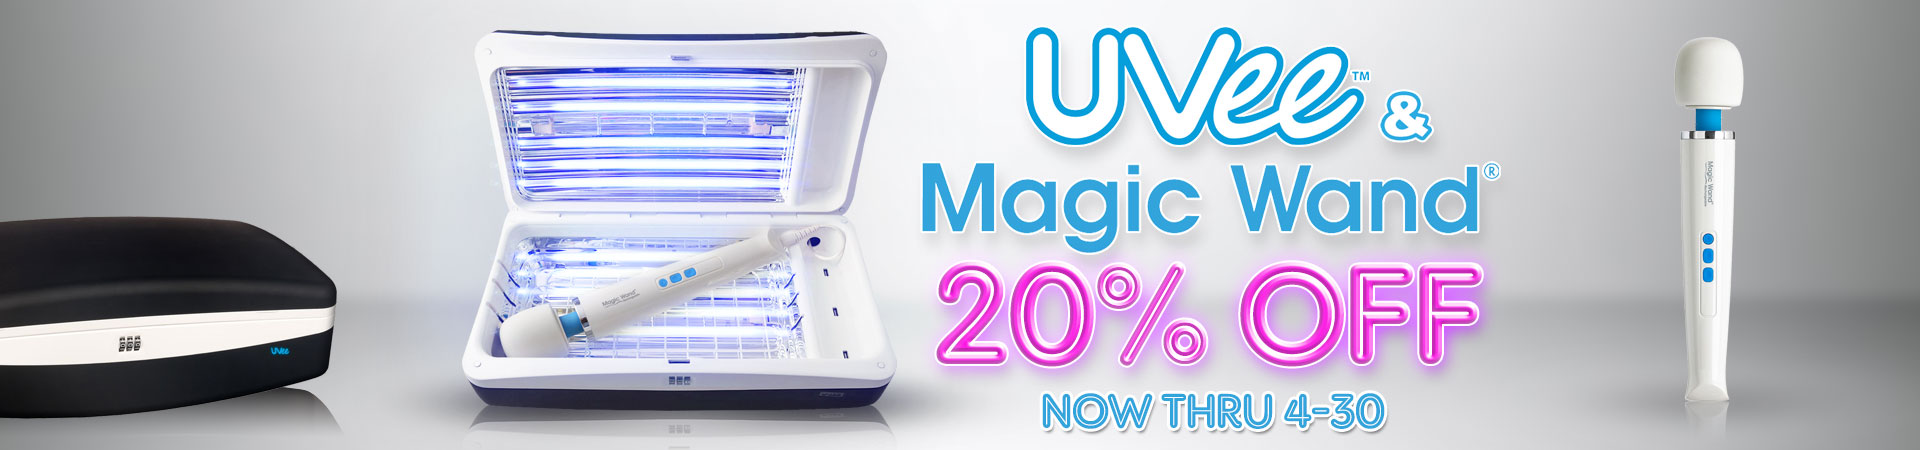 Save Big! Get The Iconic Magic Wand Rechargeable Vibrator And The Uvee Home Play Sanitizing System For 20% Off Now Thru 4/30!